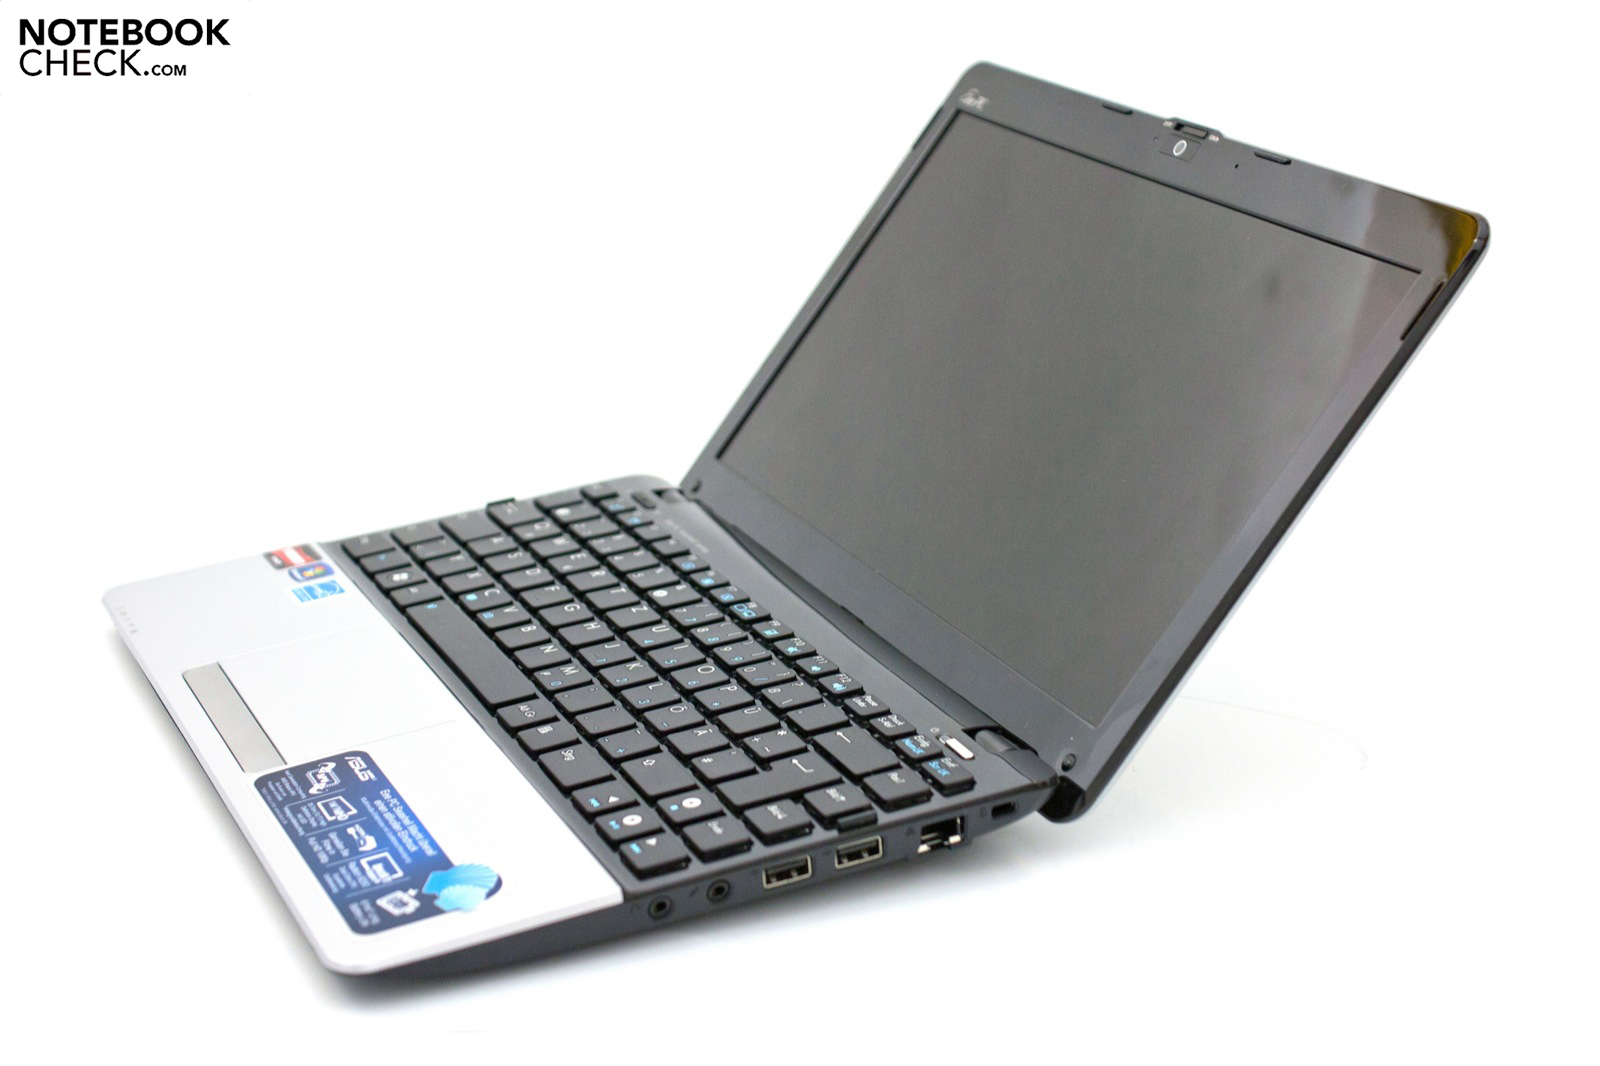 Asus Eee PC 1215P Netbook LAN Windows 8 X64 Driver Download